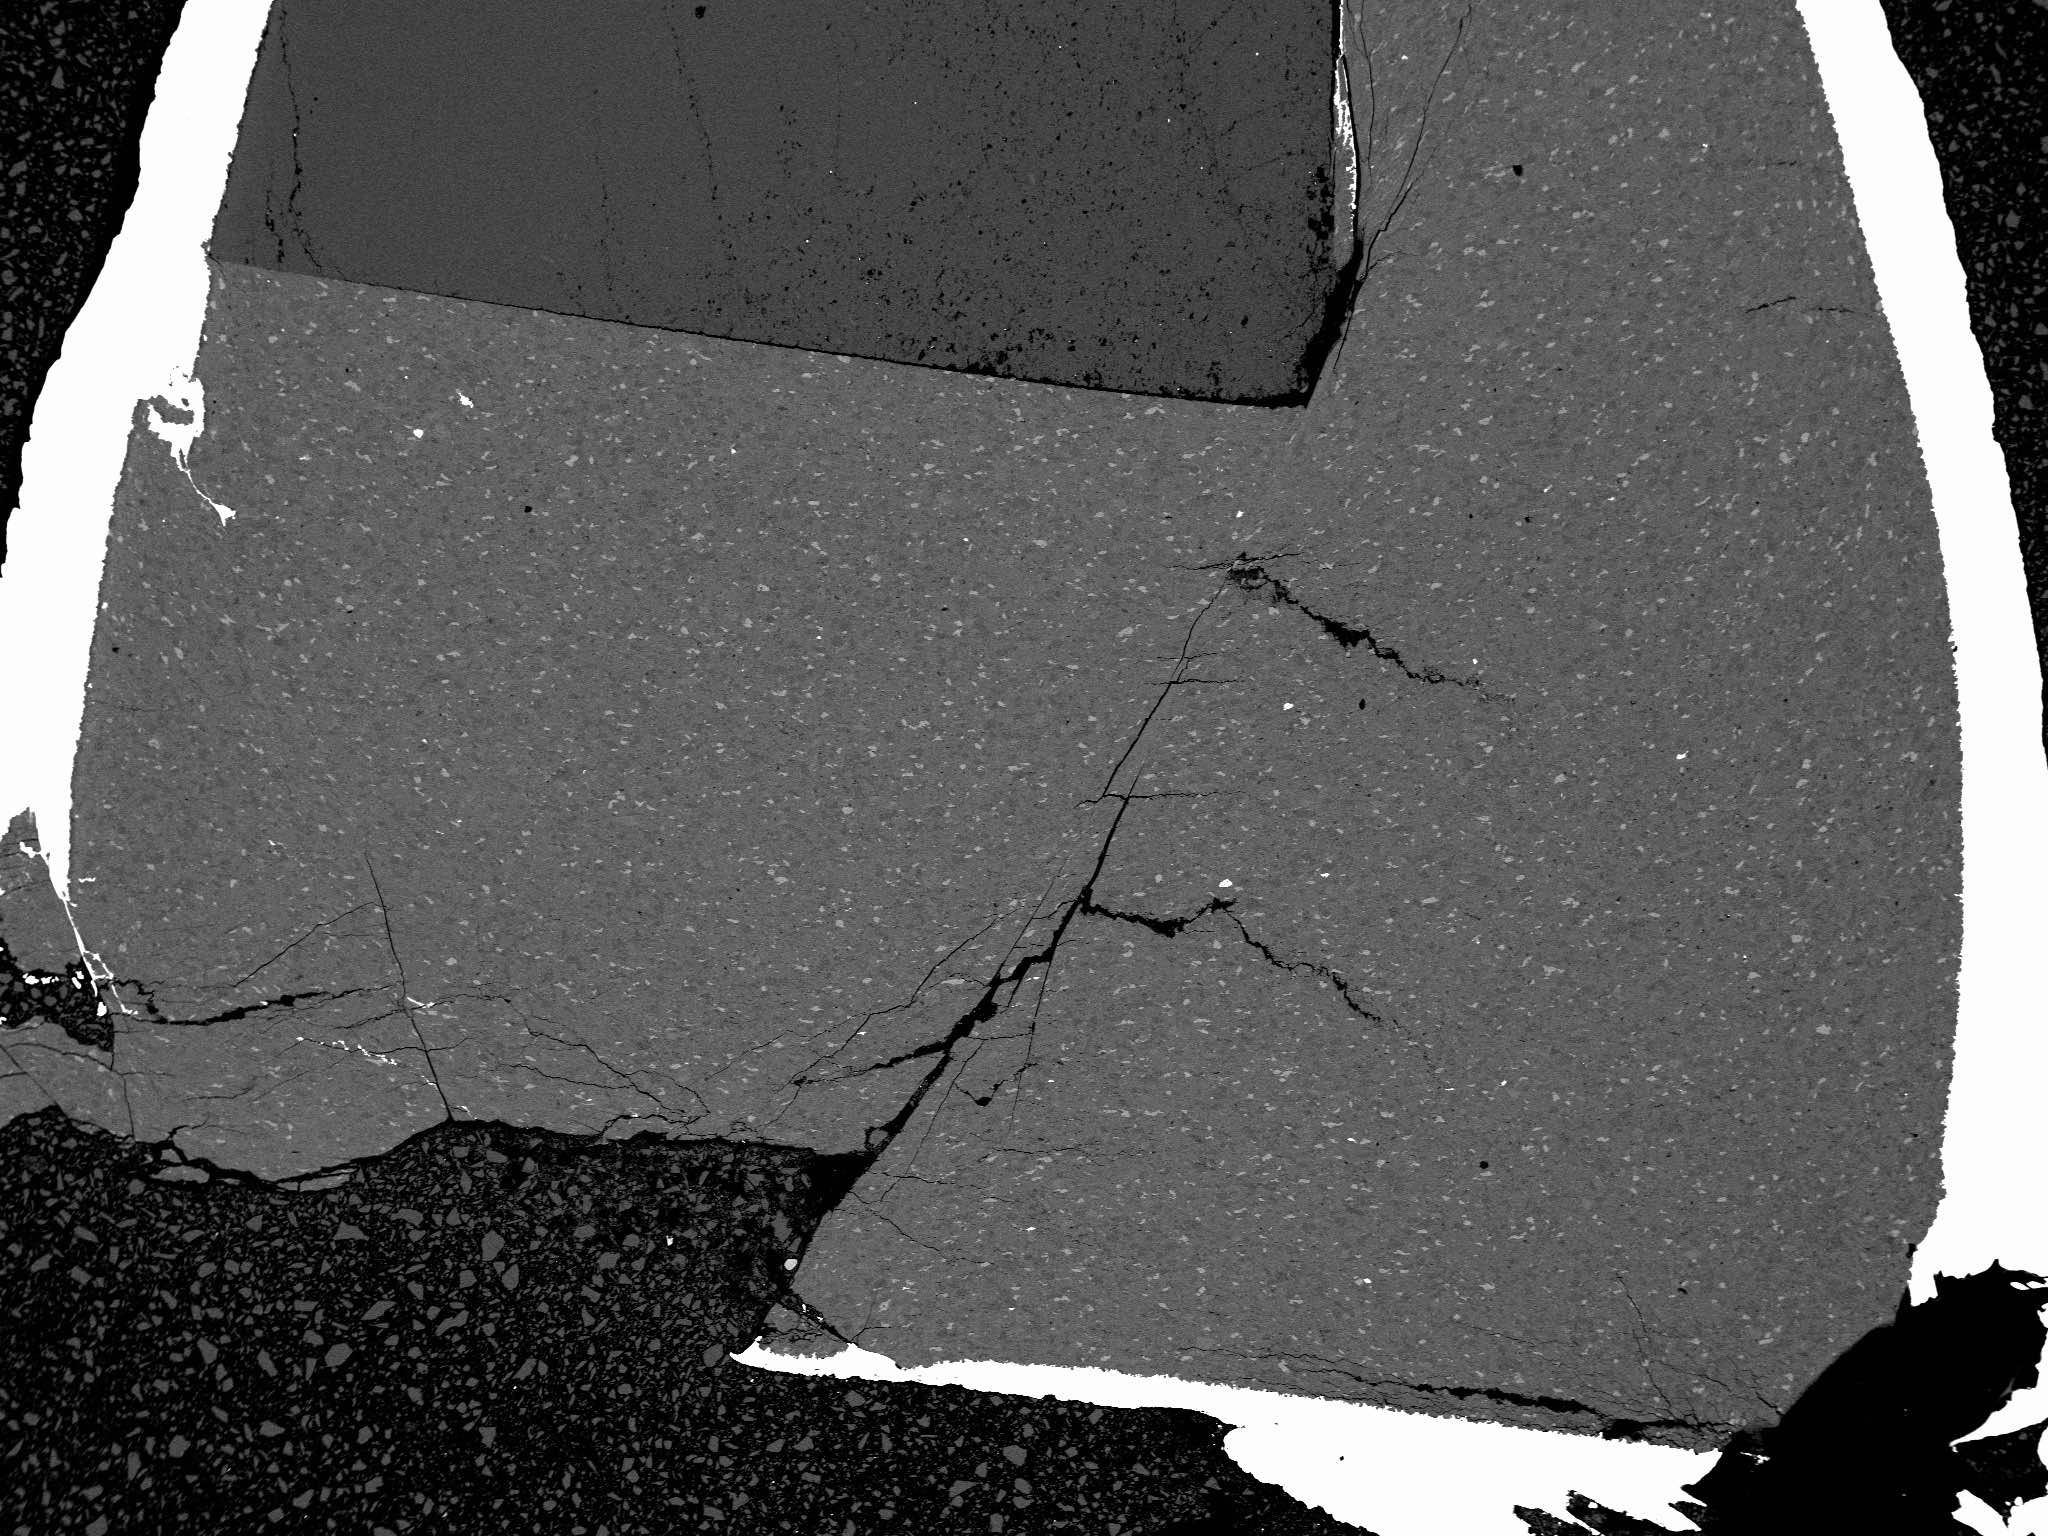 BSE image showing a high-pressure fault in a glaucophane sample (GL02) after a Griggs experiment.